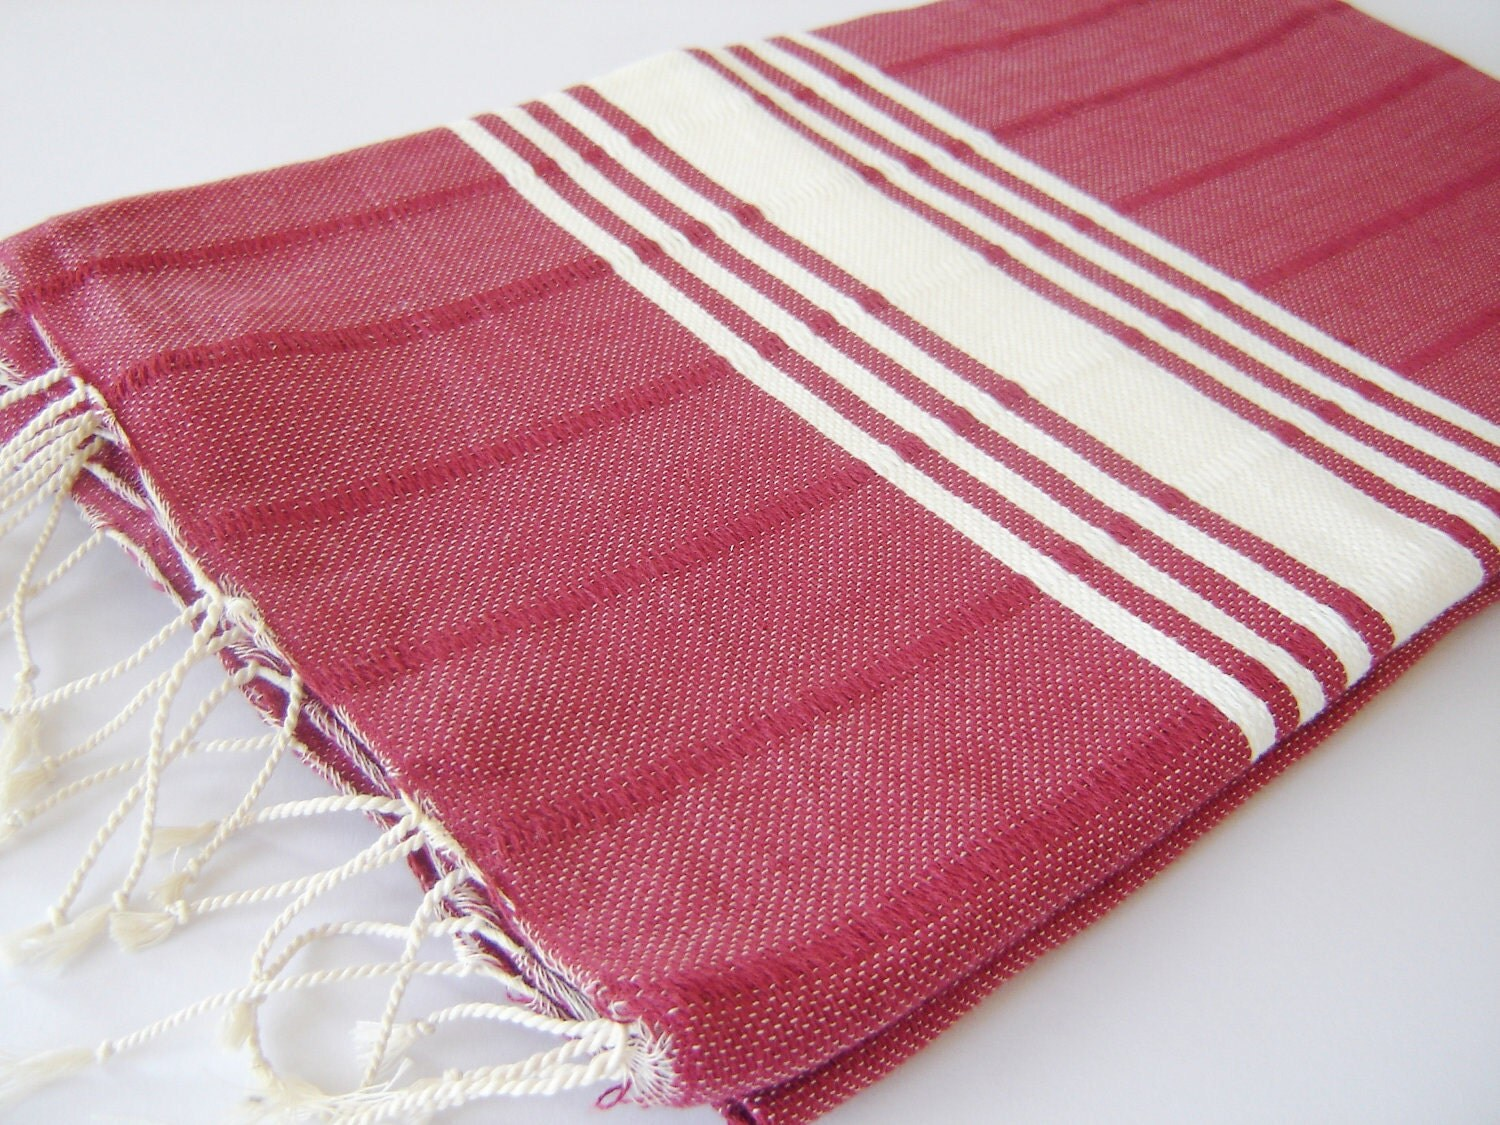 Best quality Turkish Towel, Natural Soft Cotton Bath and Beach Towel, Peshtemal, Claret Red - TheAnatolian